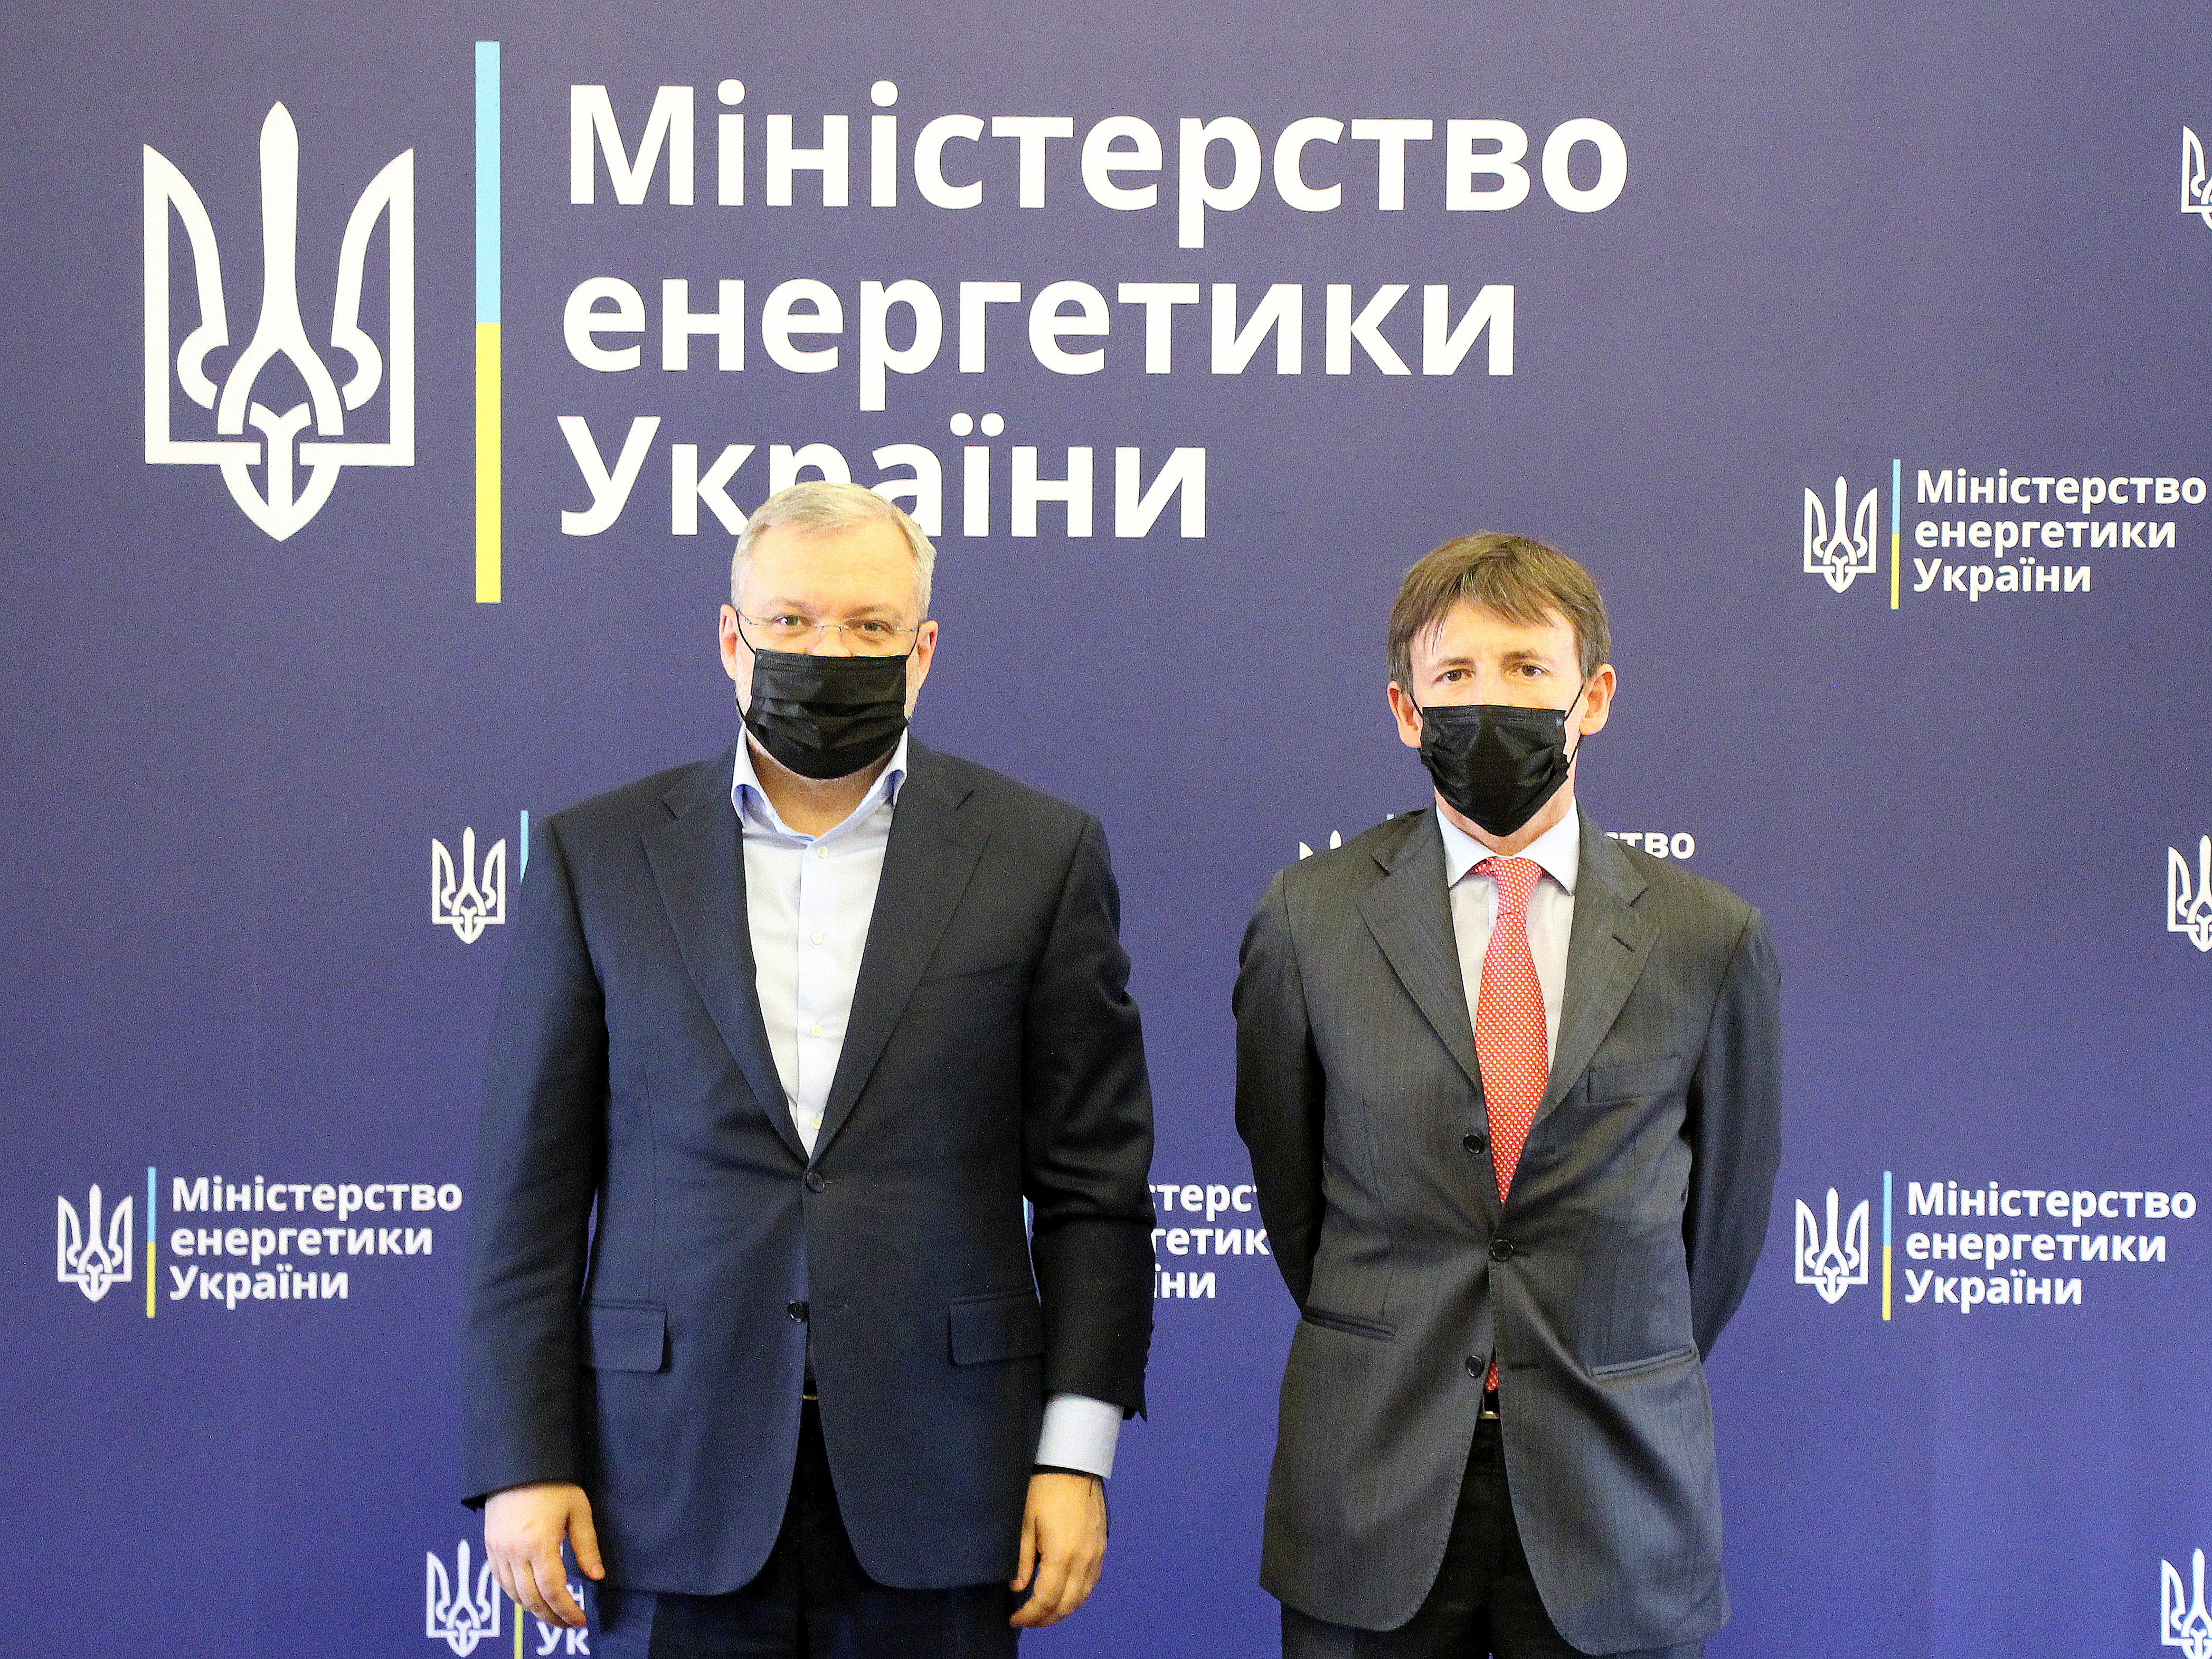 Ukraine and Italy will develop cooperation in the gas transmission industry and hydrogen energy